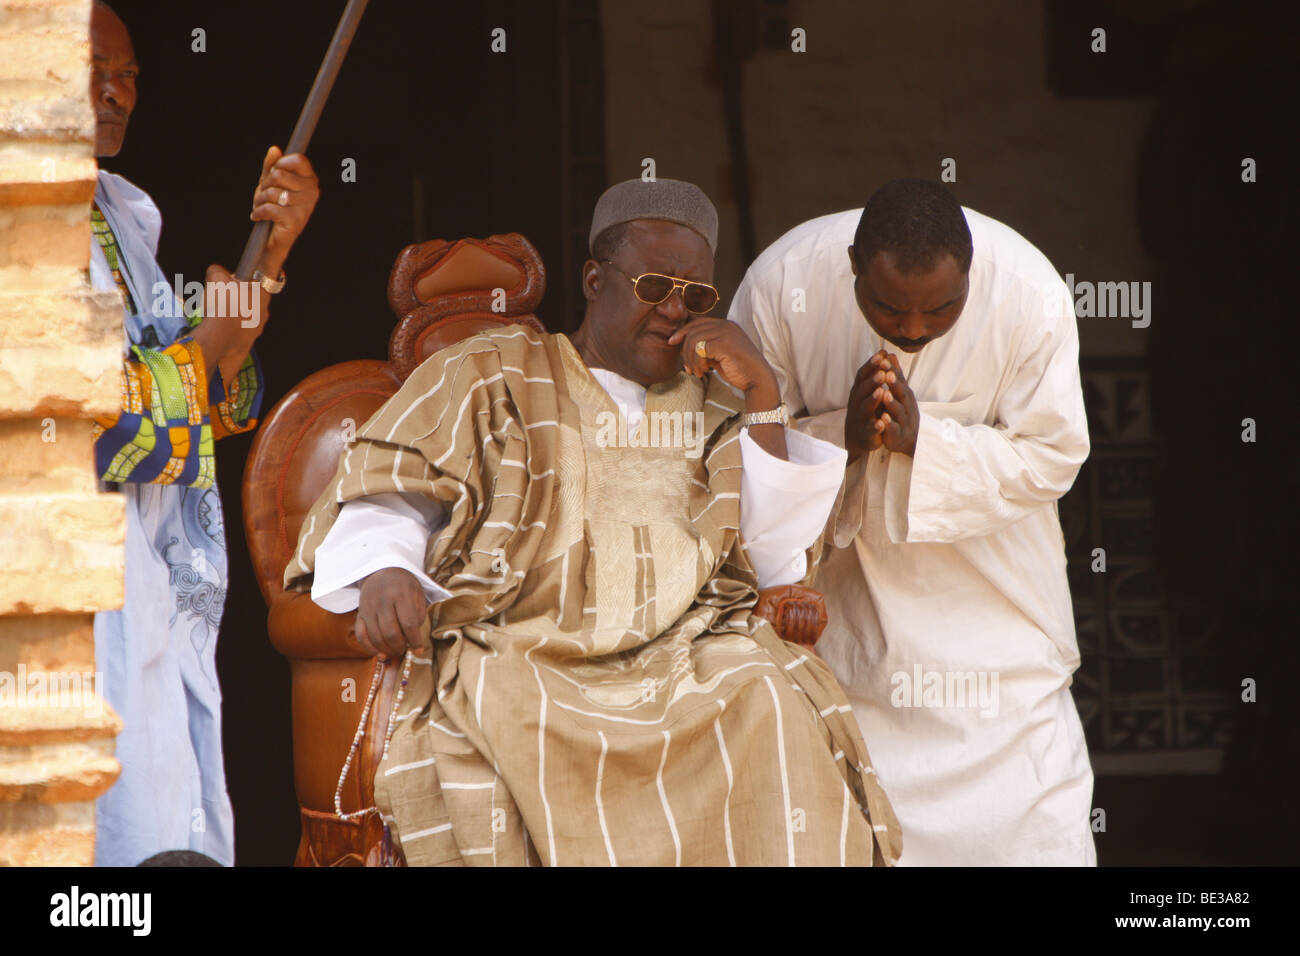 Sultan Ibrahim Mbombo Njoya in front of the Sultan's palace, holding an audience, Foumban, Cameroon, Africa - Stock Image